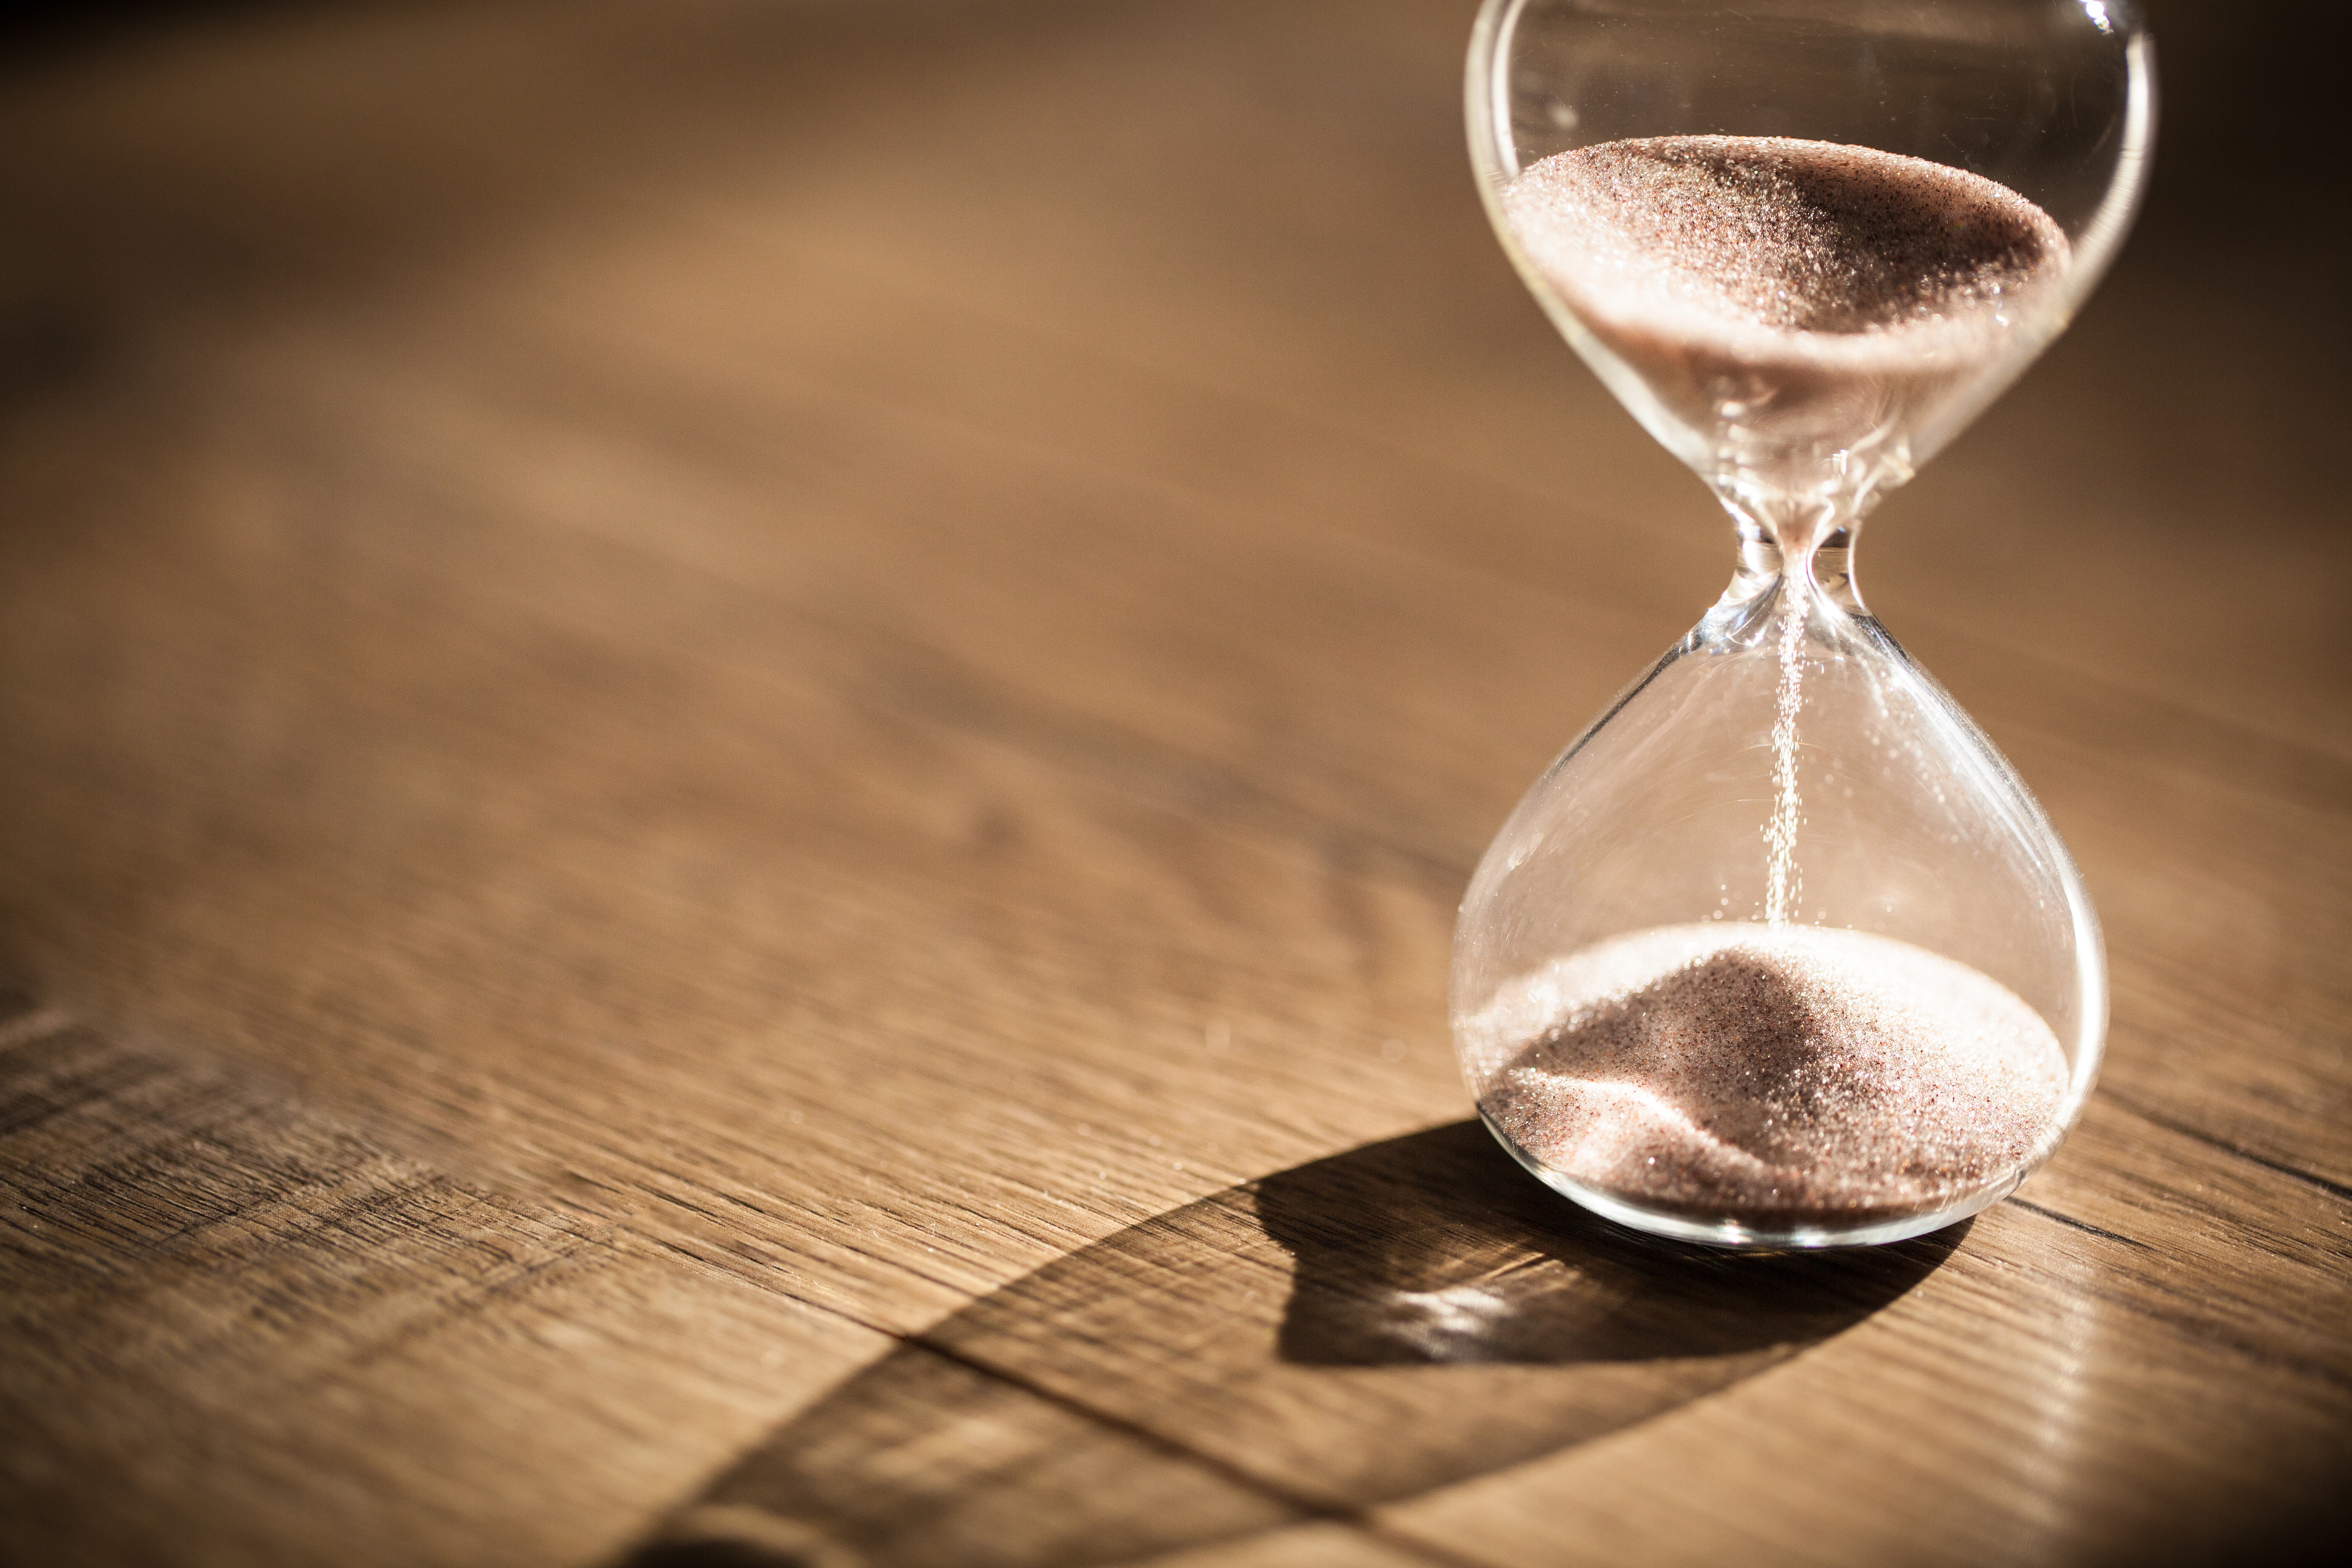 The hourglass: serving the news, serving the reader - Poynter